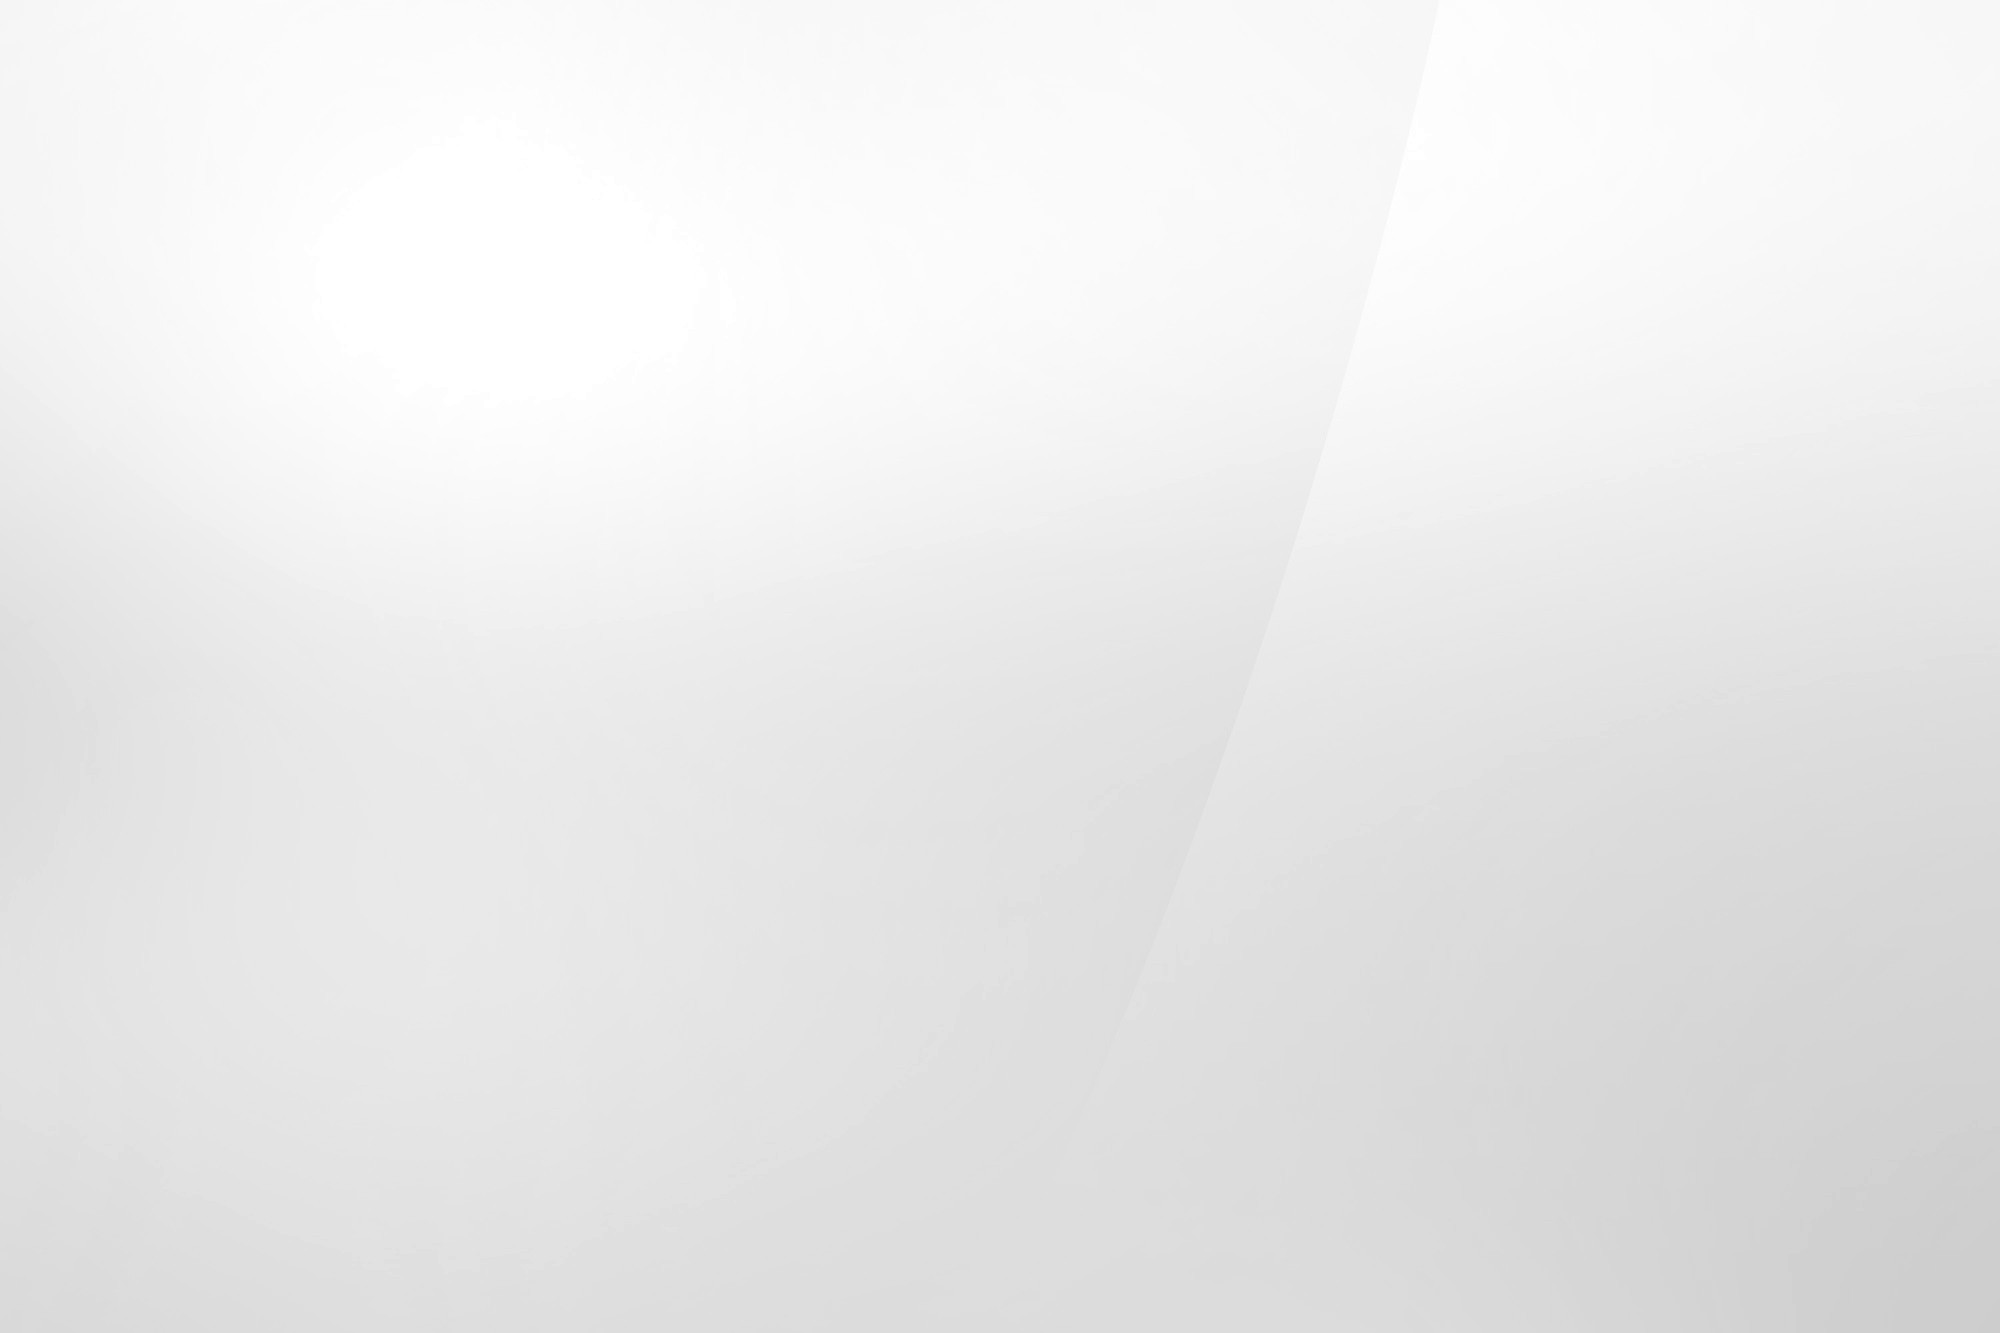 Background white download free beautiful wallpapers for - White background 1920x1080 ...